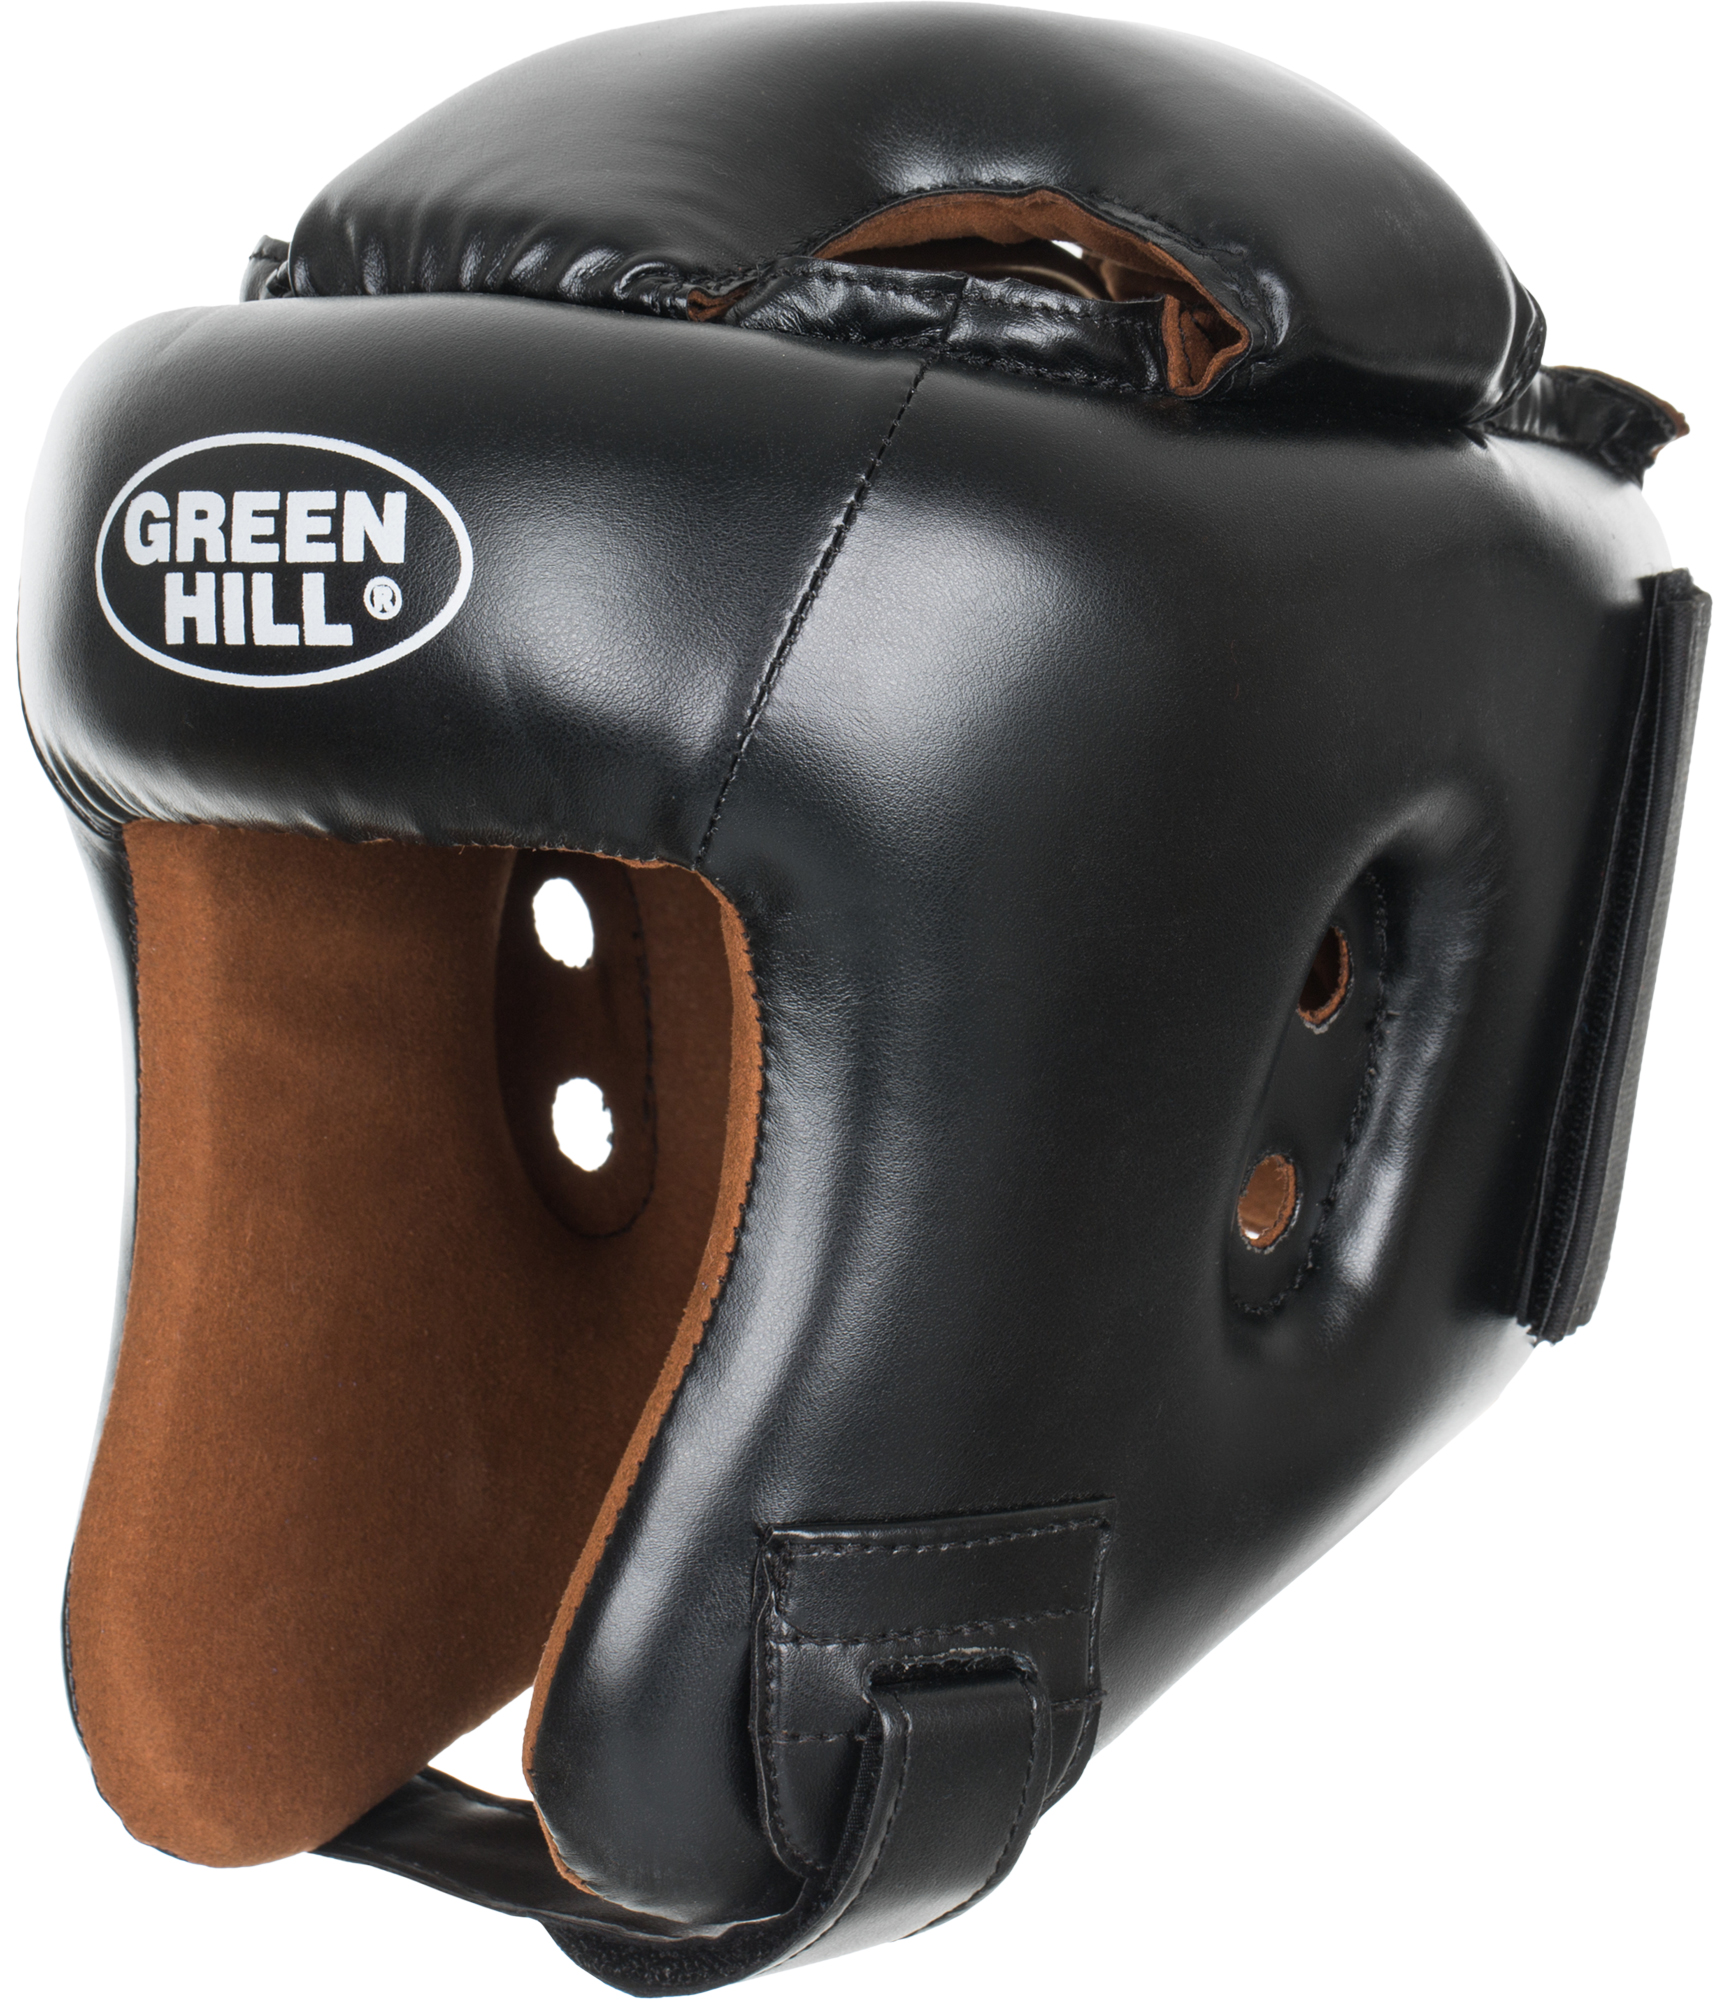 Green Hill Шлем для кикбоксинга Green Hill Headgear